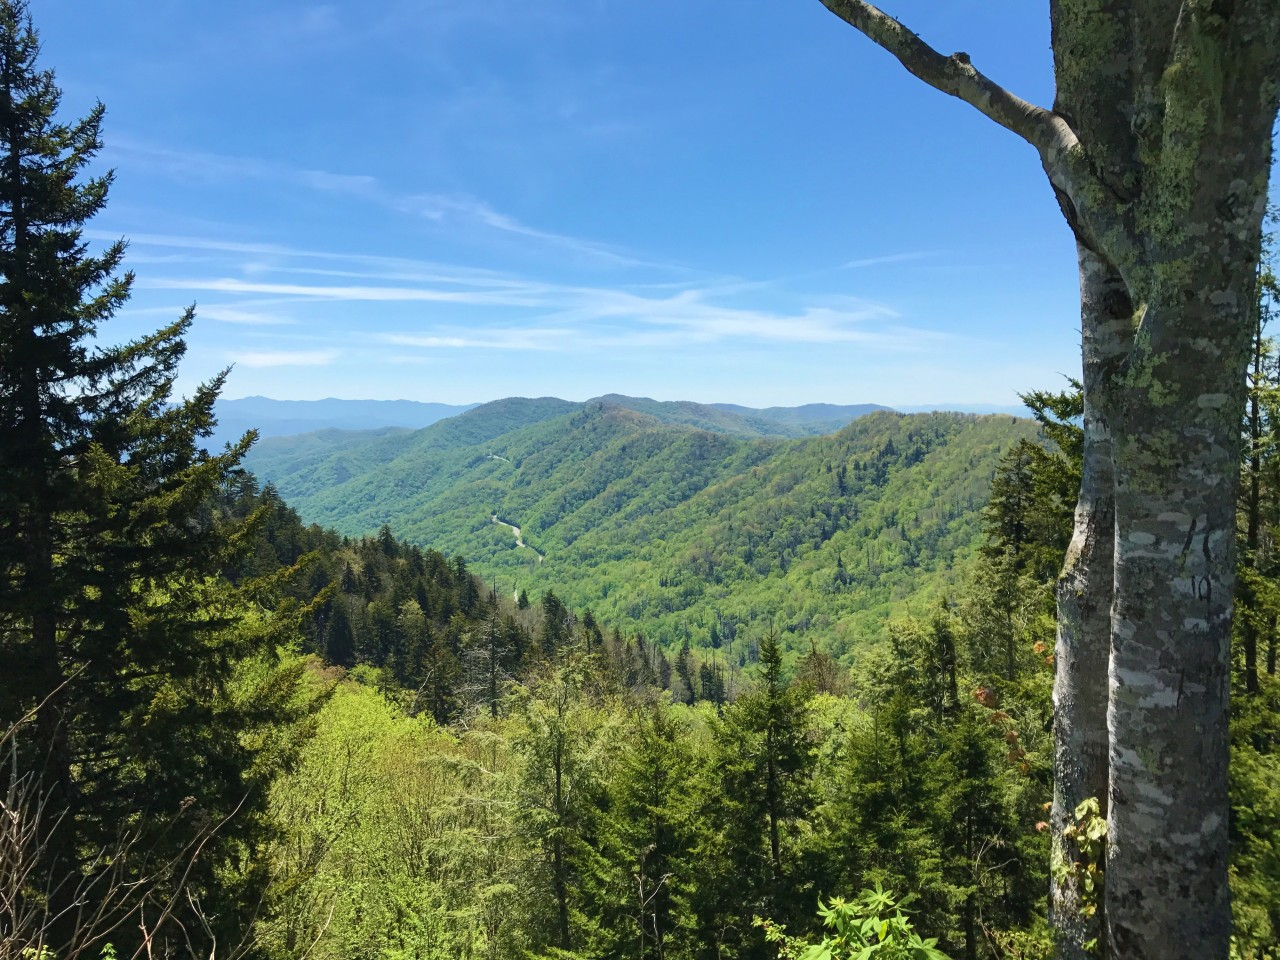 The Great Smoky Mountains – ClingmansDome